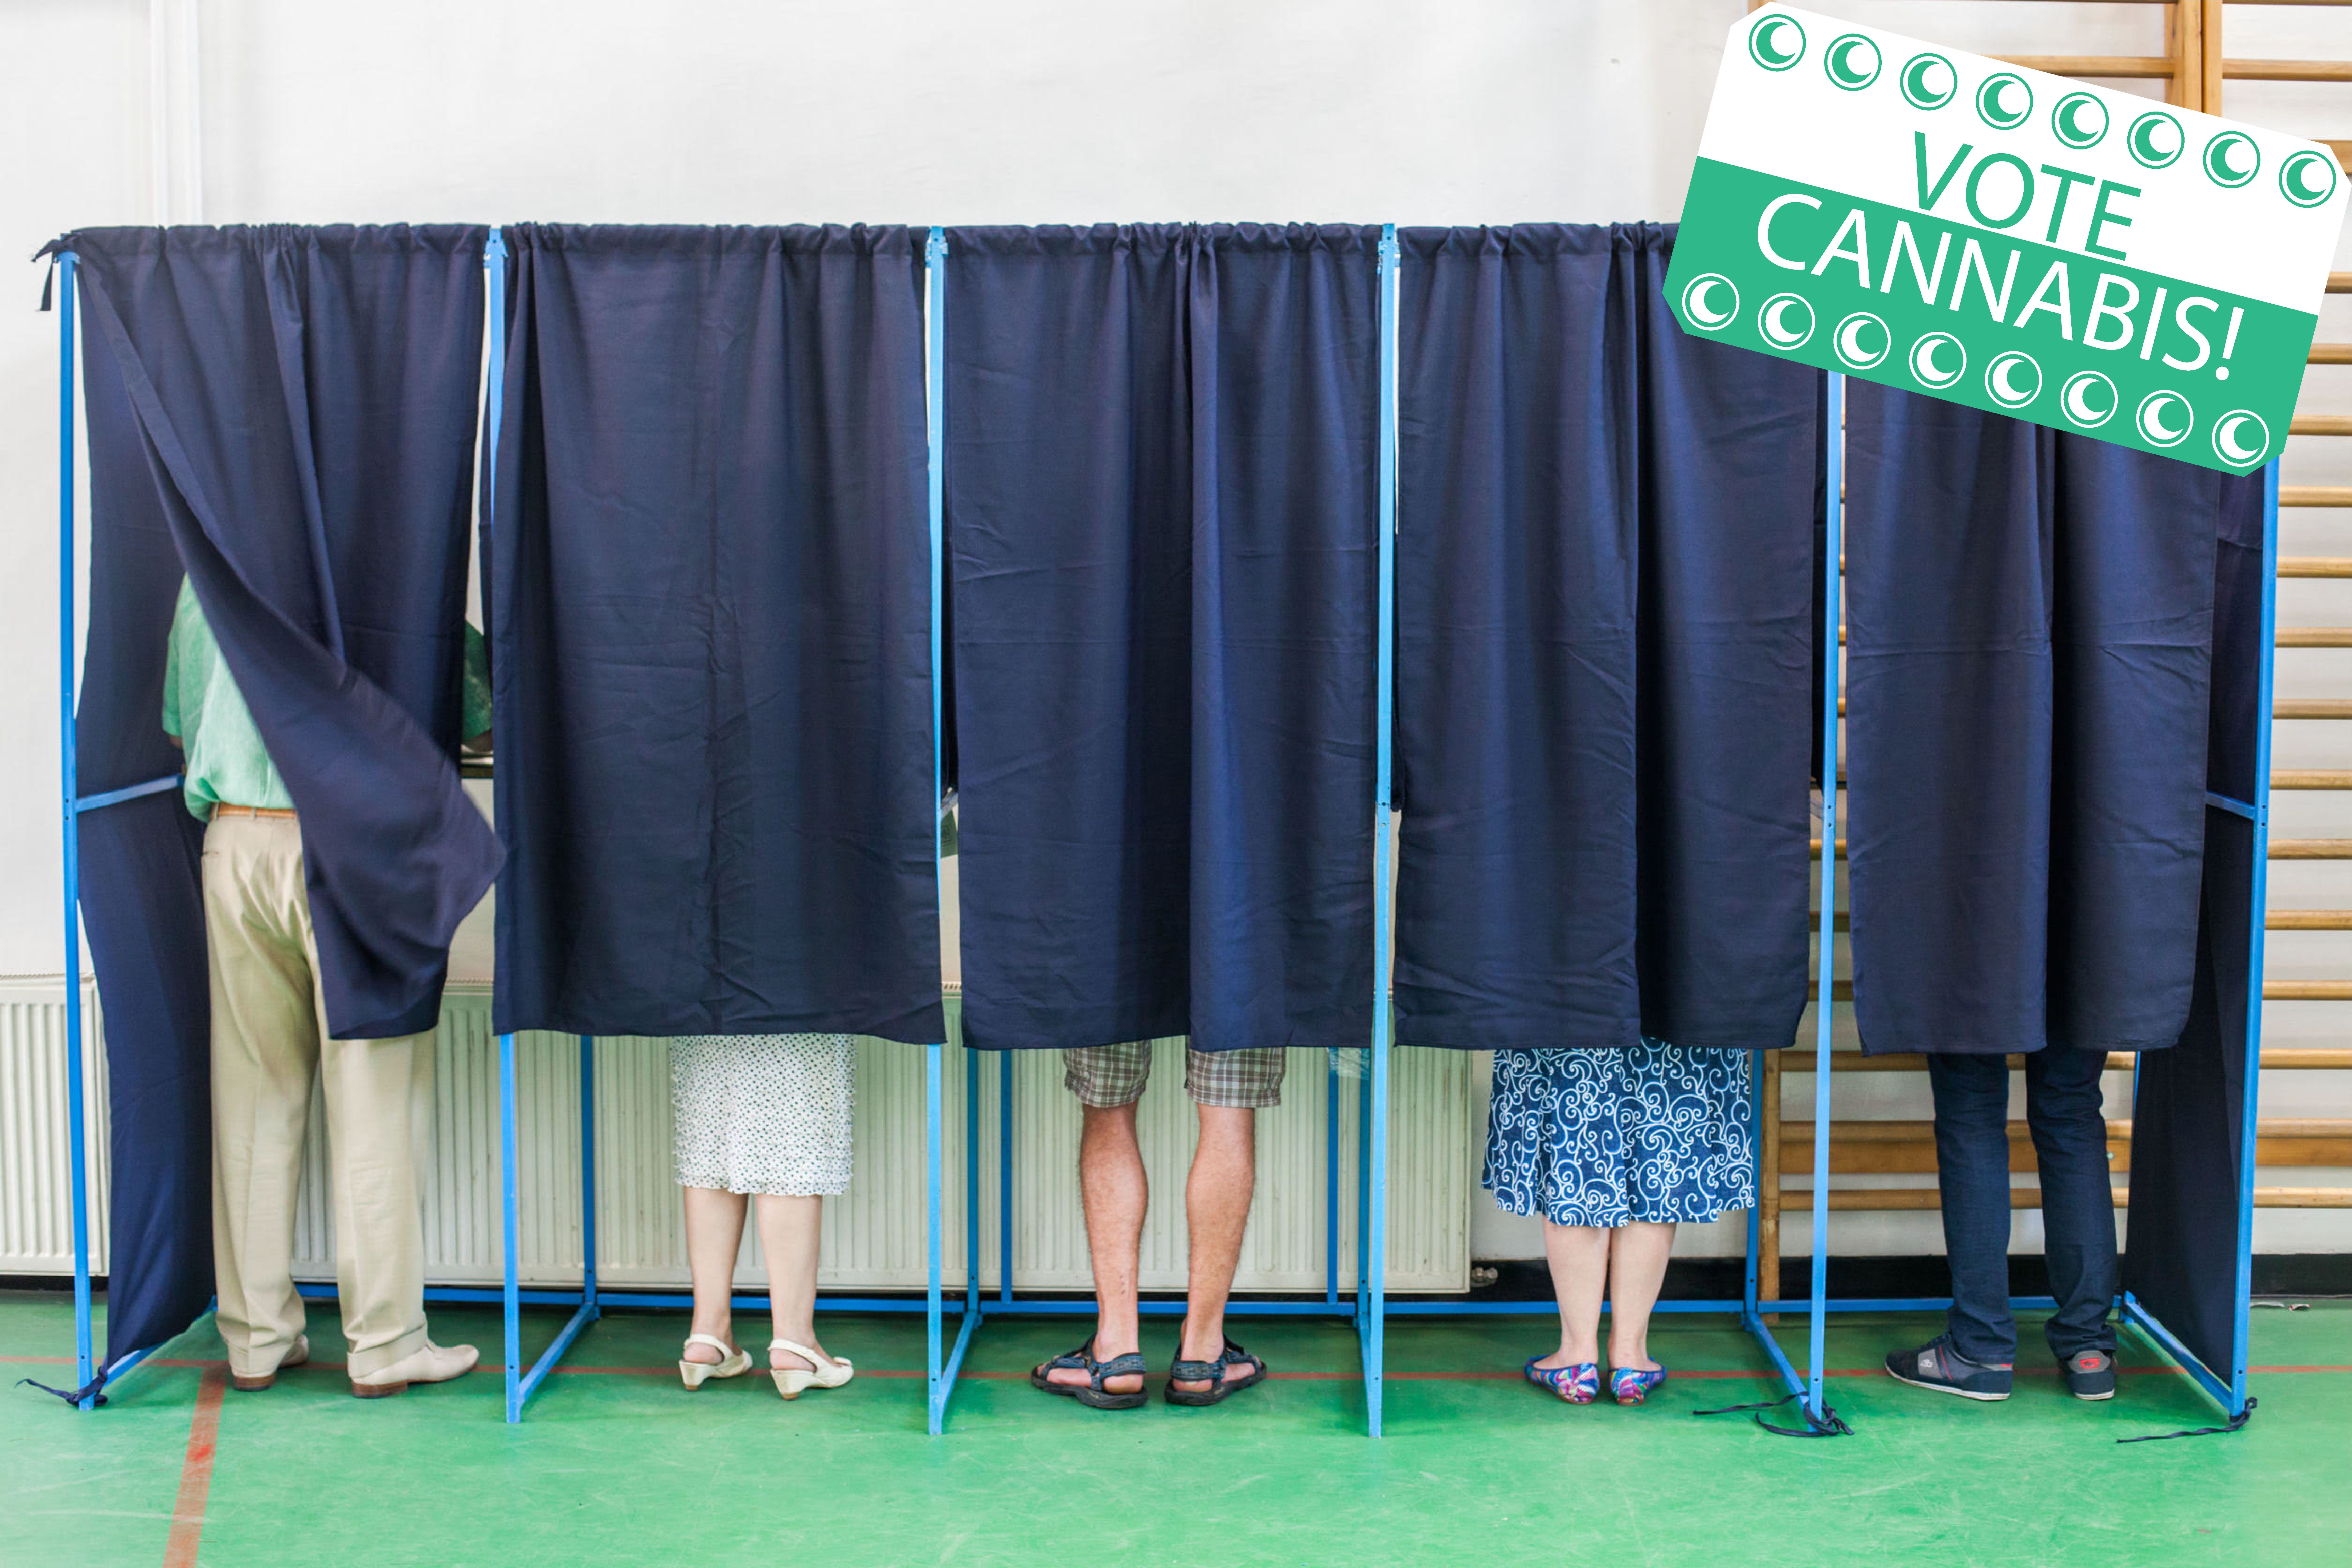 Vote for Cannabis Ballot Measures